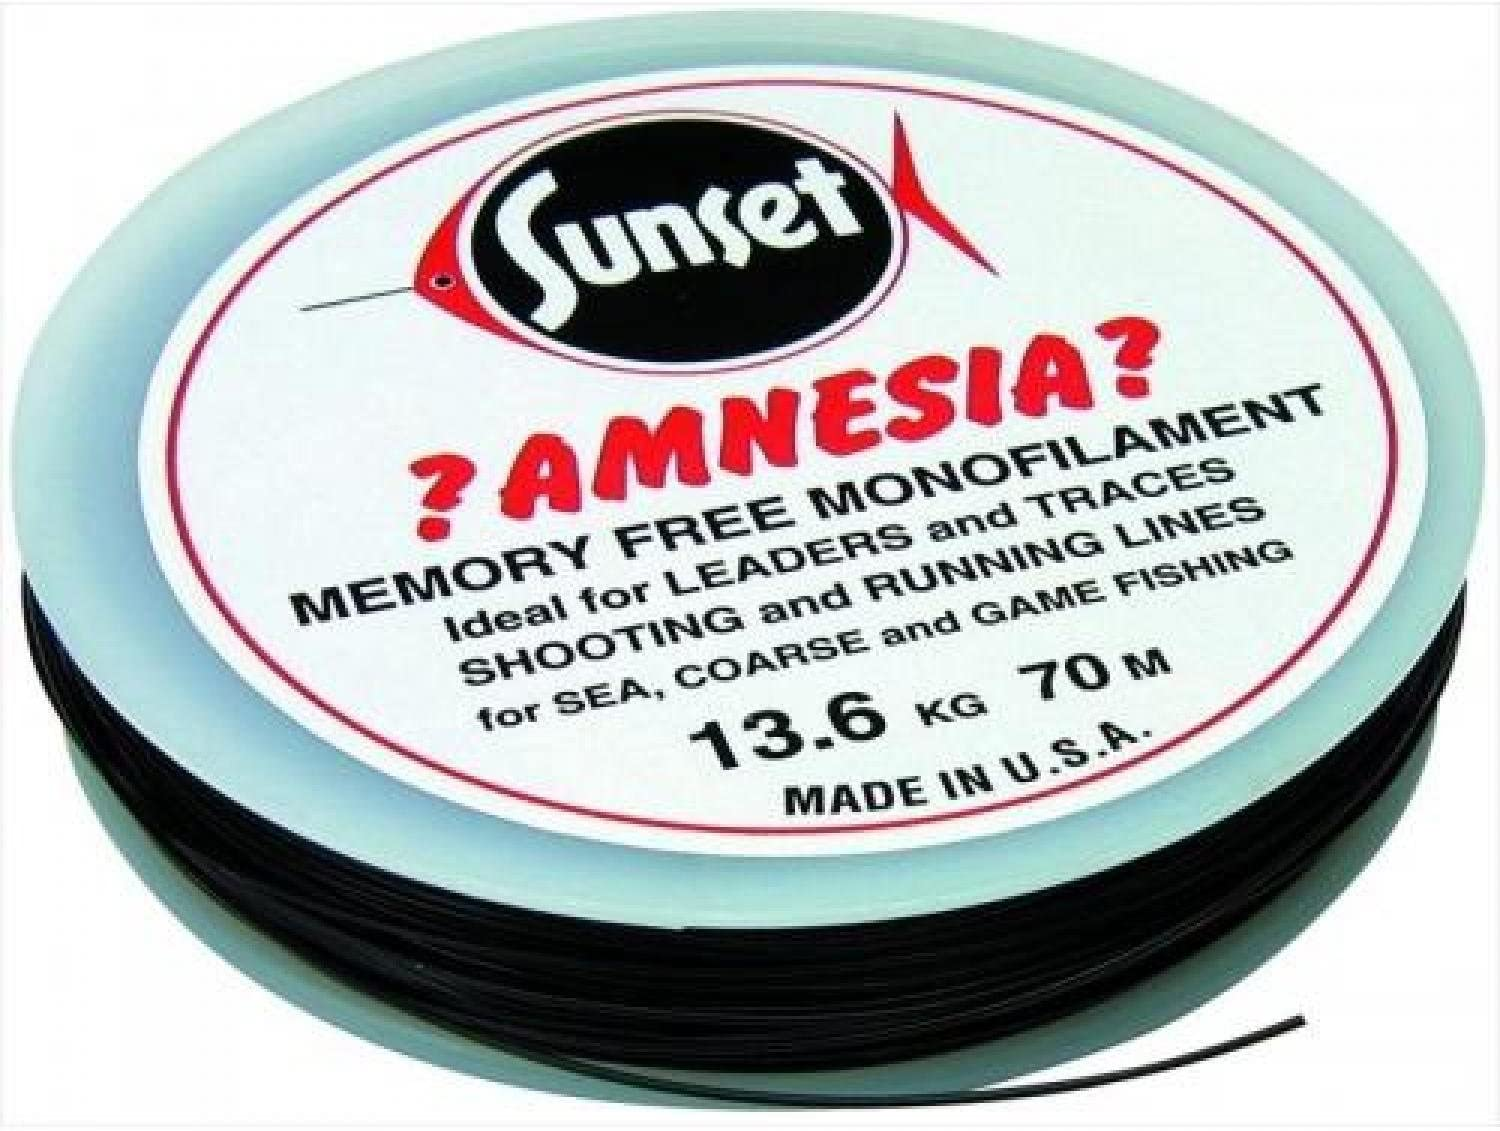 All Sizes Clear Sunset Amnesia Memory Free Sea Line Leader Black Red